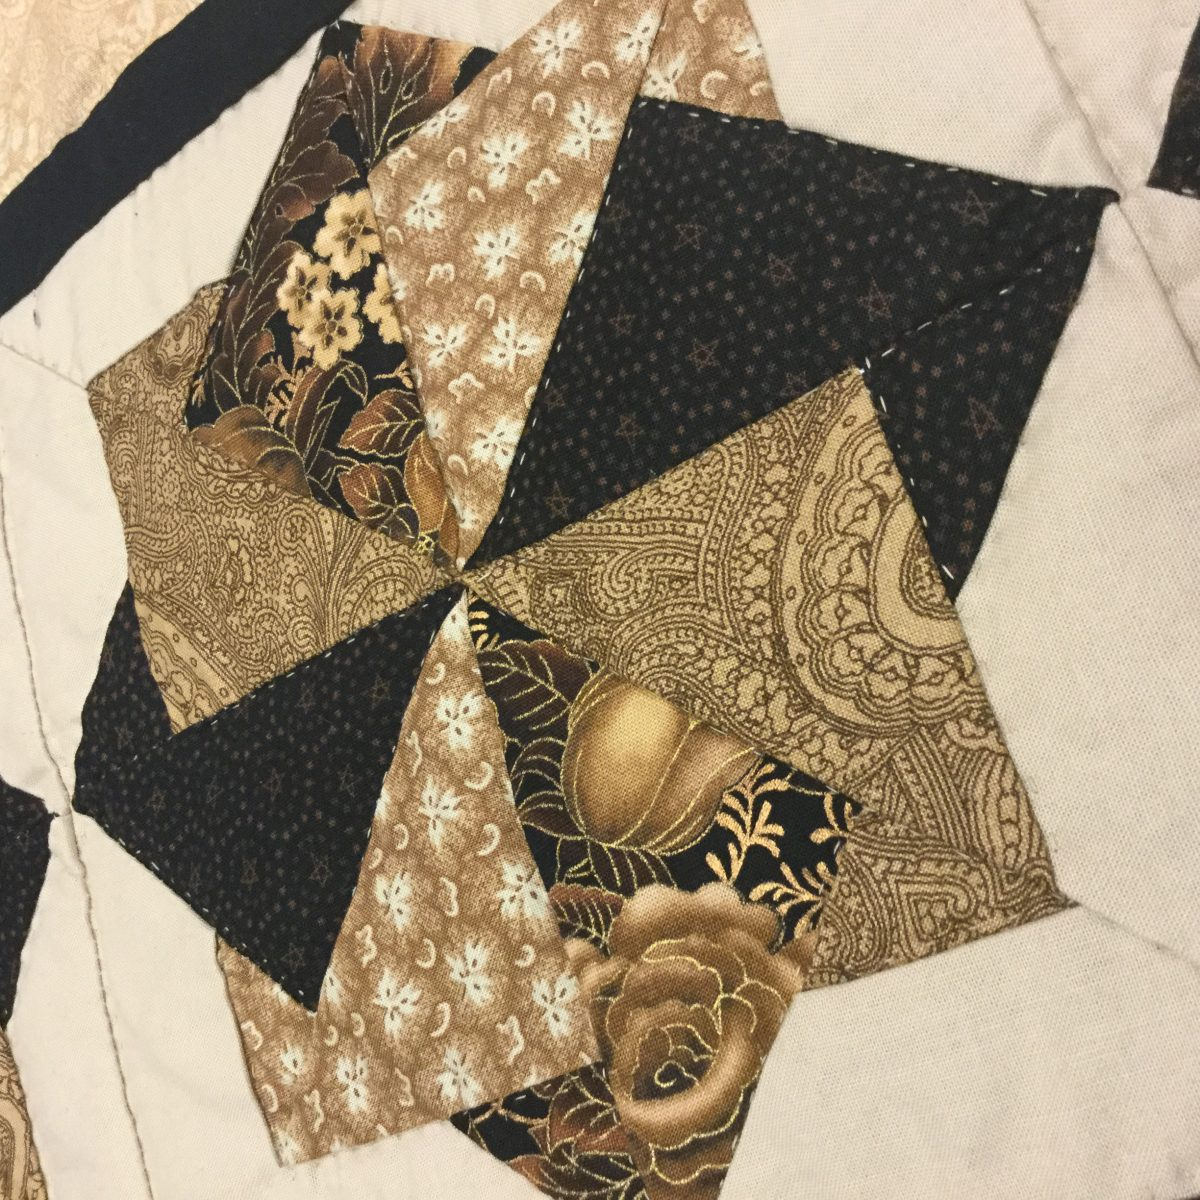 Handmade Amish Quilts FOR Sale | Spin Star Quilt | Buy a Queen ... : quilts for sale handmade amish - Adamdwight.com